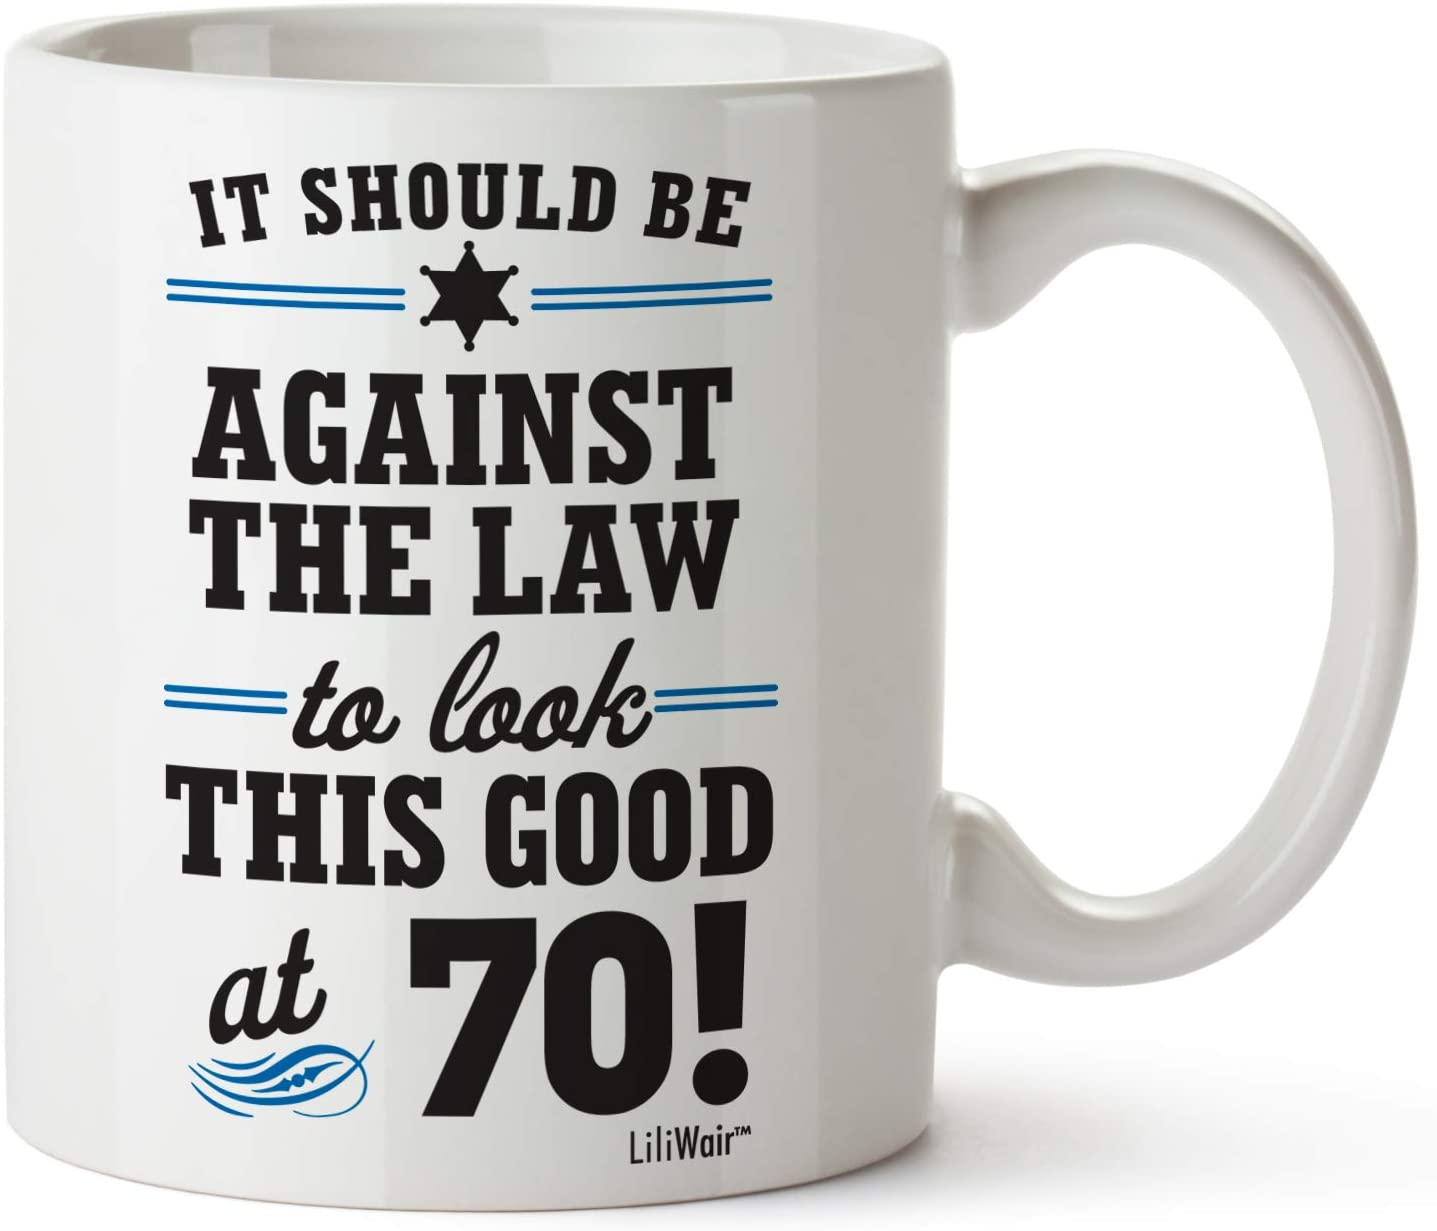 1950 70th Birthday Gifts Men Women | Birthday Gift for Man Woman turning 70 | Funny 70 th Party Supplies Decorations Ideas | Seventy Year Old Bday Coffee Mug | 70 Years Gag Office Cups Presents Mens